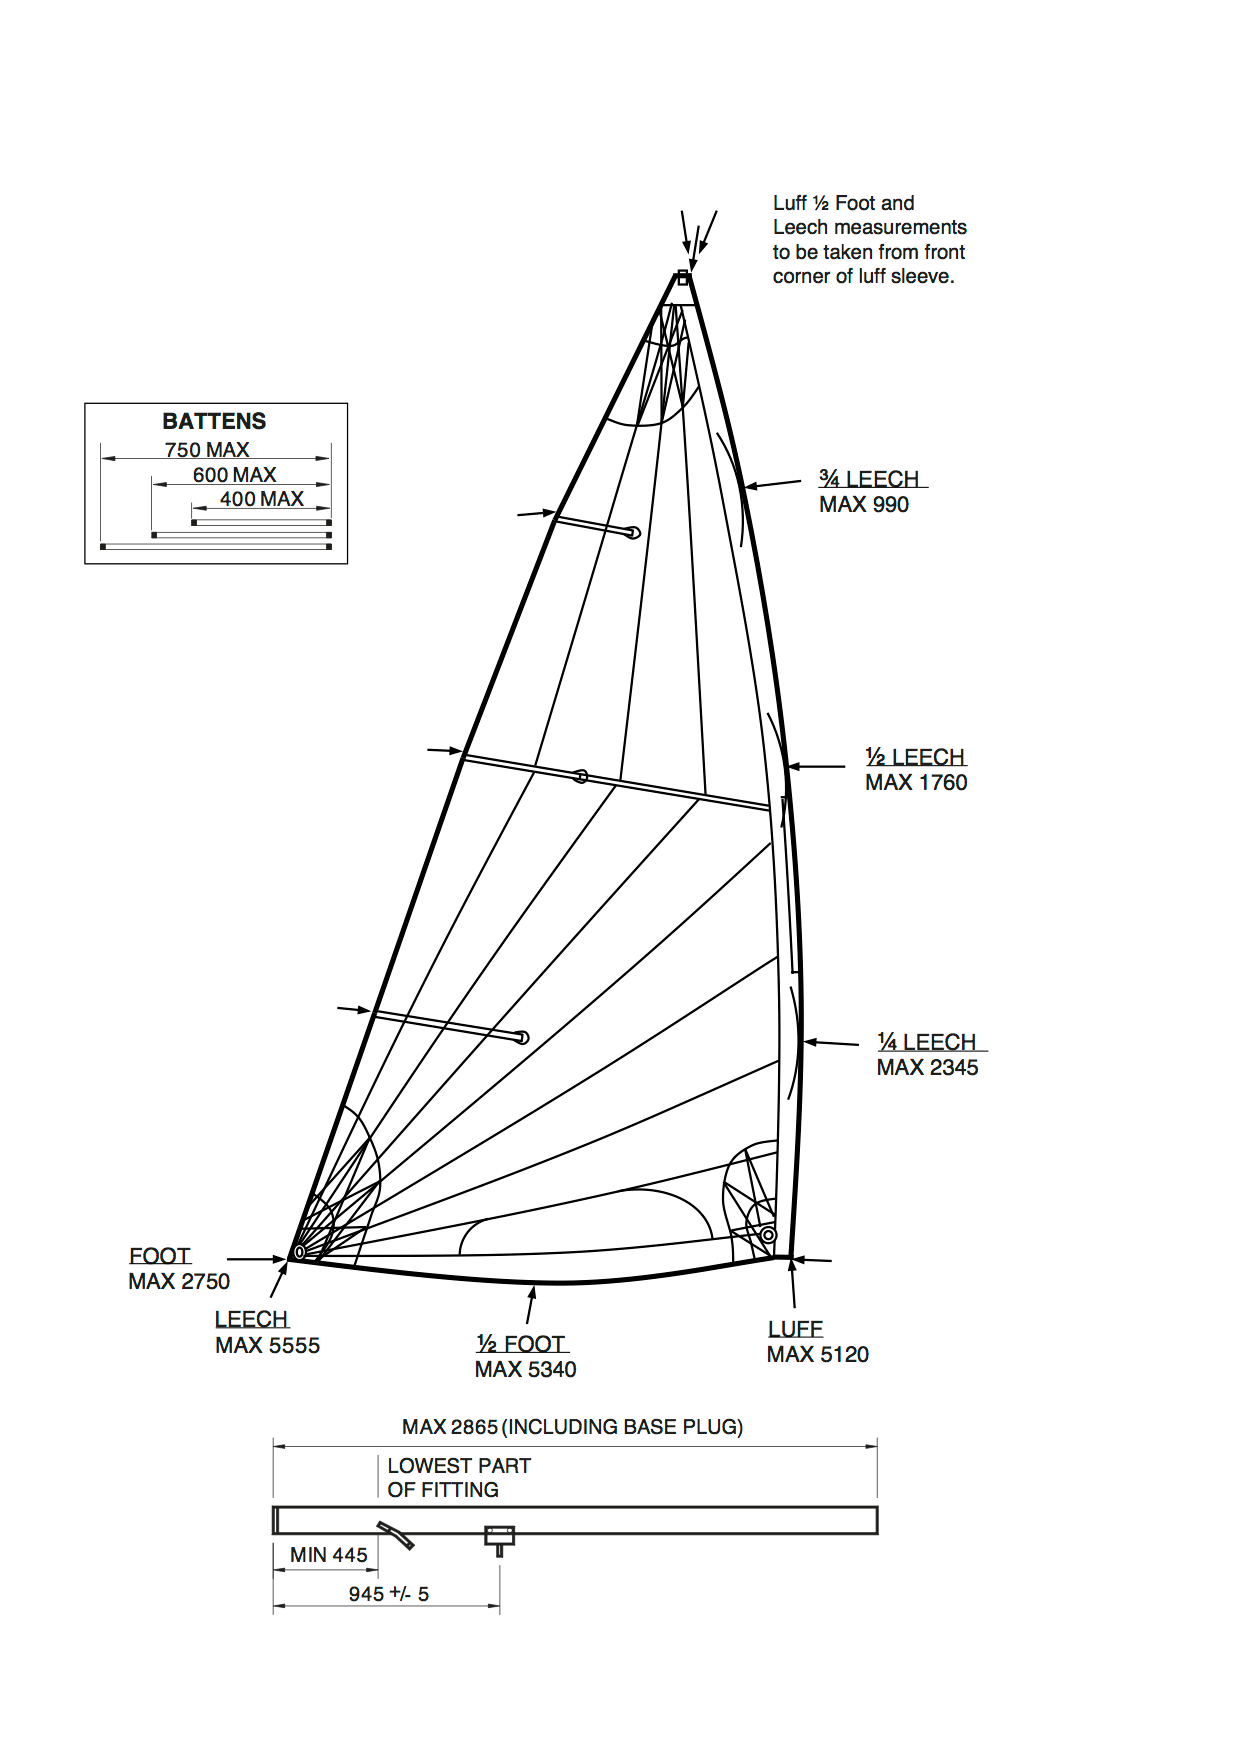 standing rigging diagram ac unit thermostat wiring of a laser sailboat circuit